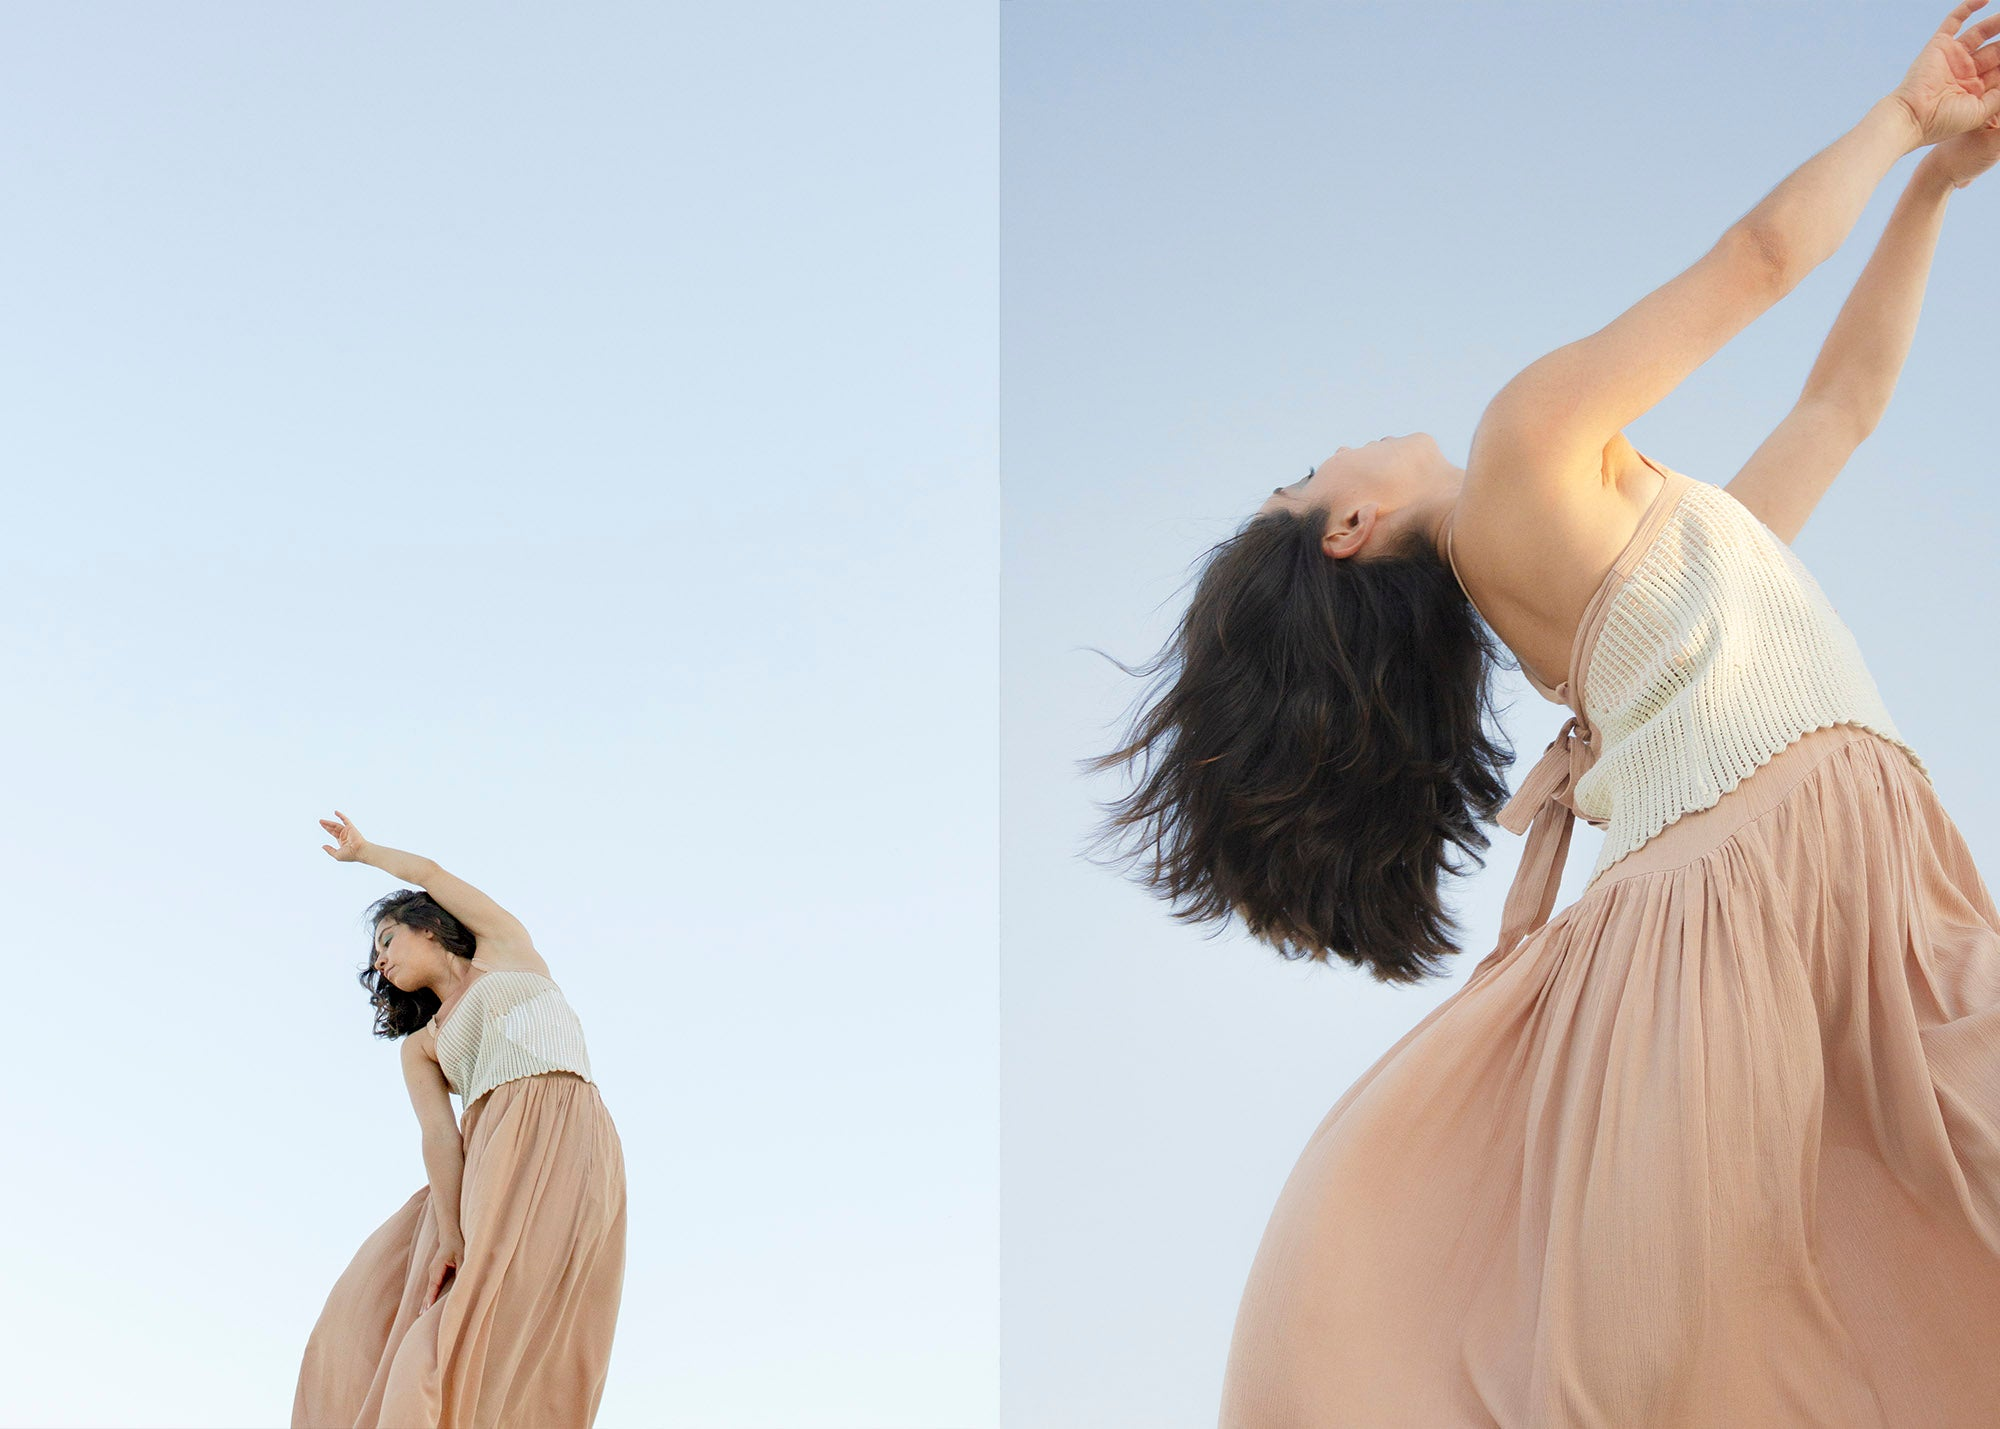 woman dancing wearing a light tan naturally dyed and handwoven dress in front of a blue sky